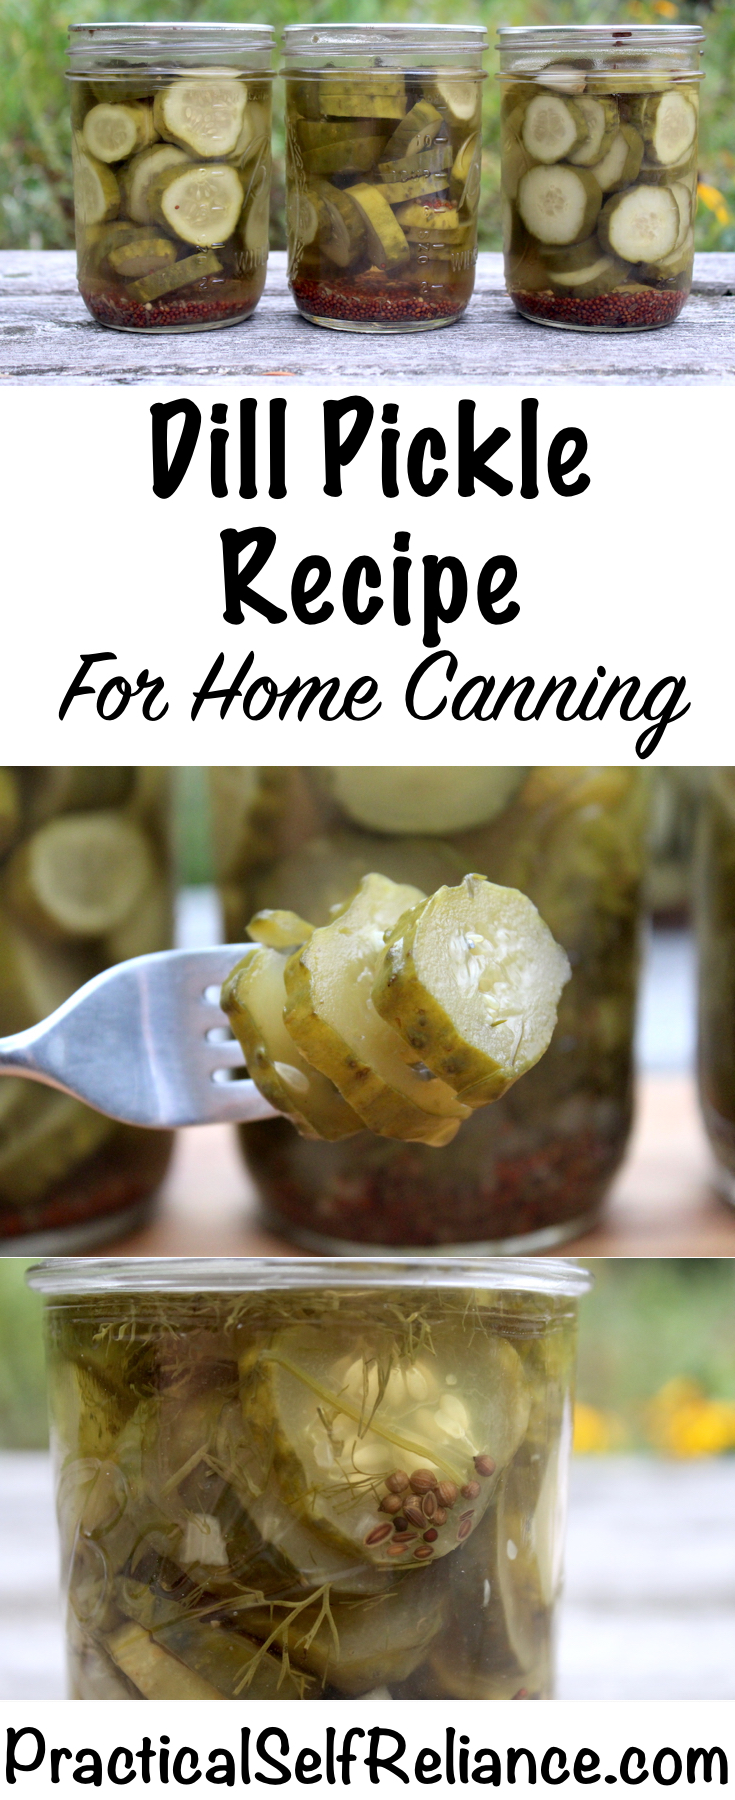 Dill Pickle Recipe for Canning ~ Safely Preserve Dill Pickles at Home #pickles #dillpickles #recipe #pickling #canning #foodpreservation #homesteading #selfsufficiency #prepper